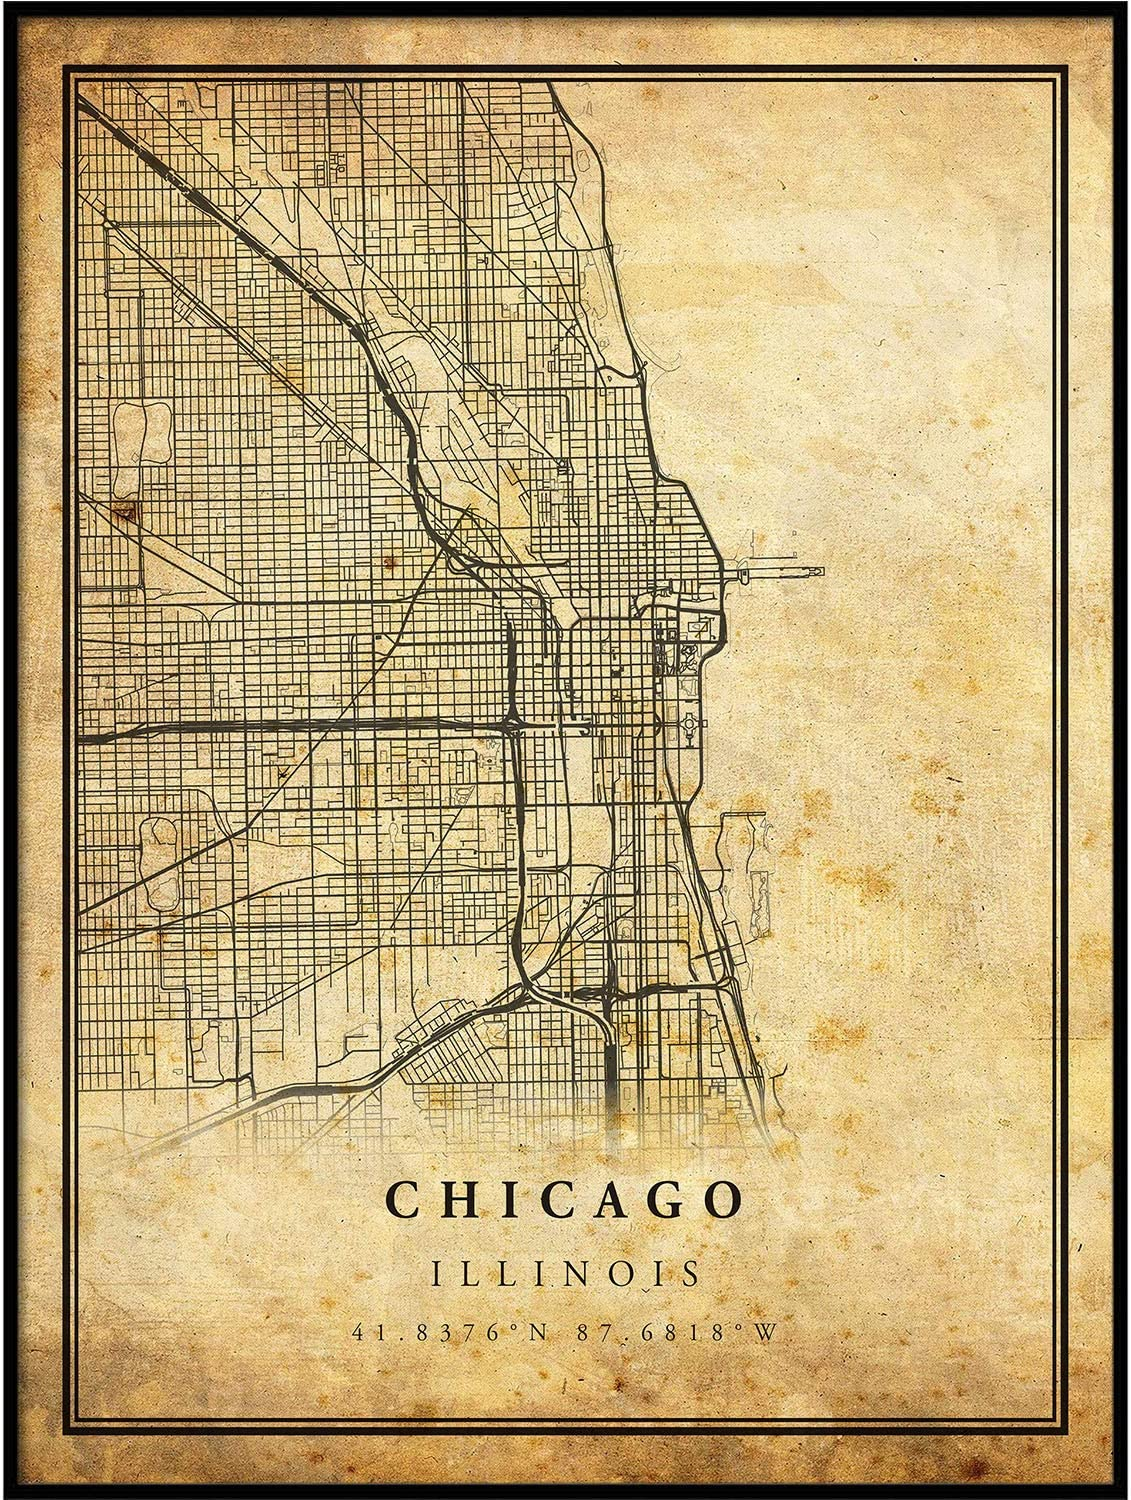 Chicago map Vintage Style Poster Print   Old City Artwork Prints   Antique Style Home Decor   Illinois Wall Art Gift   Vintage maps 24x36